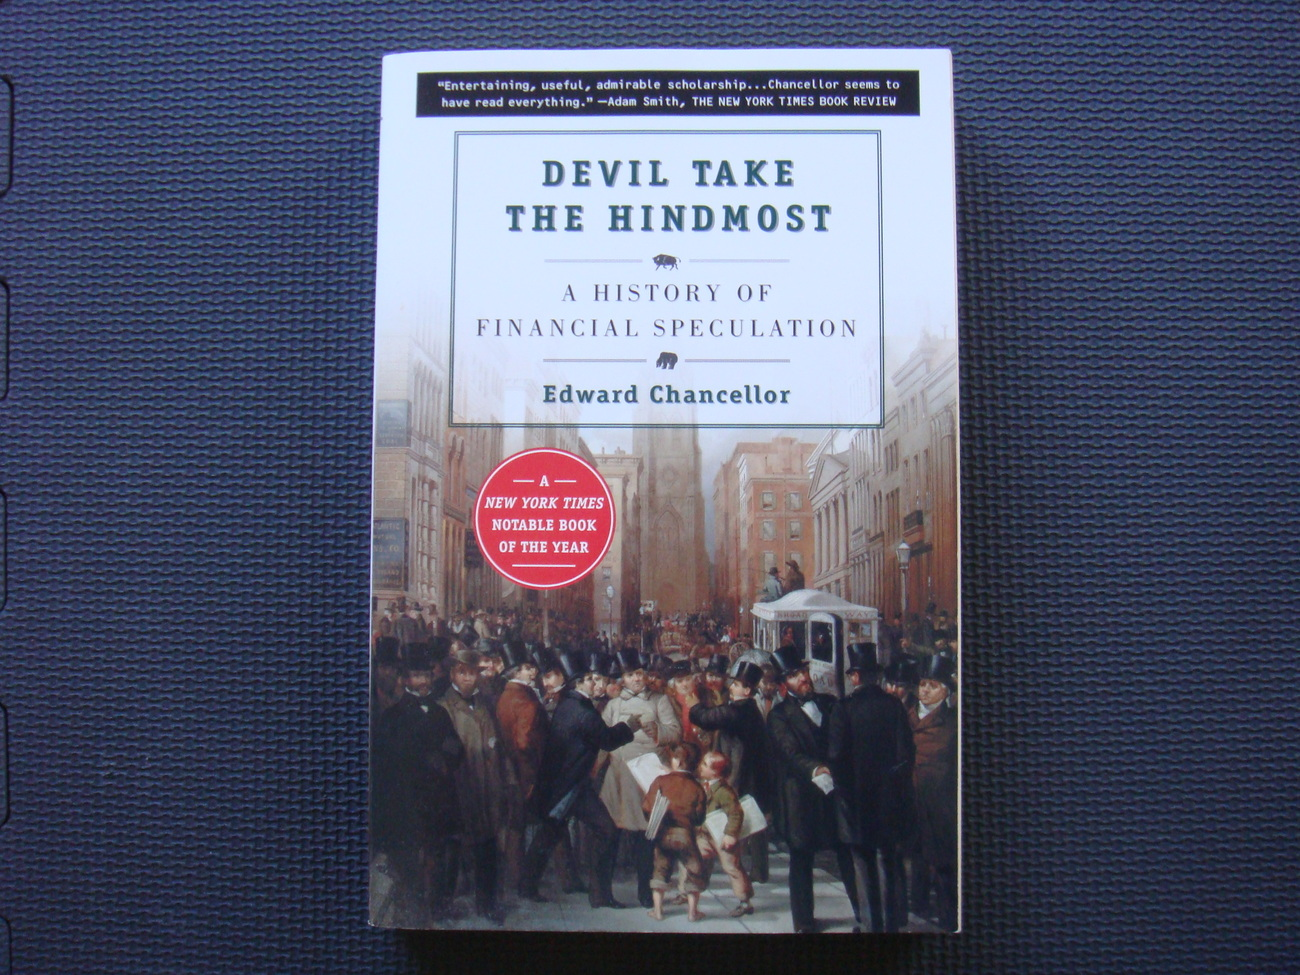 Devil Take the Hindmost: A History of Financial Speculation by Edward Chancellor